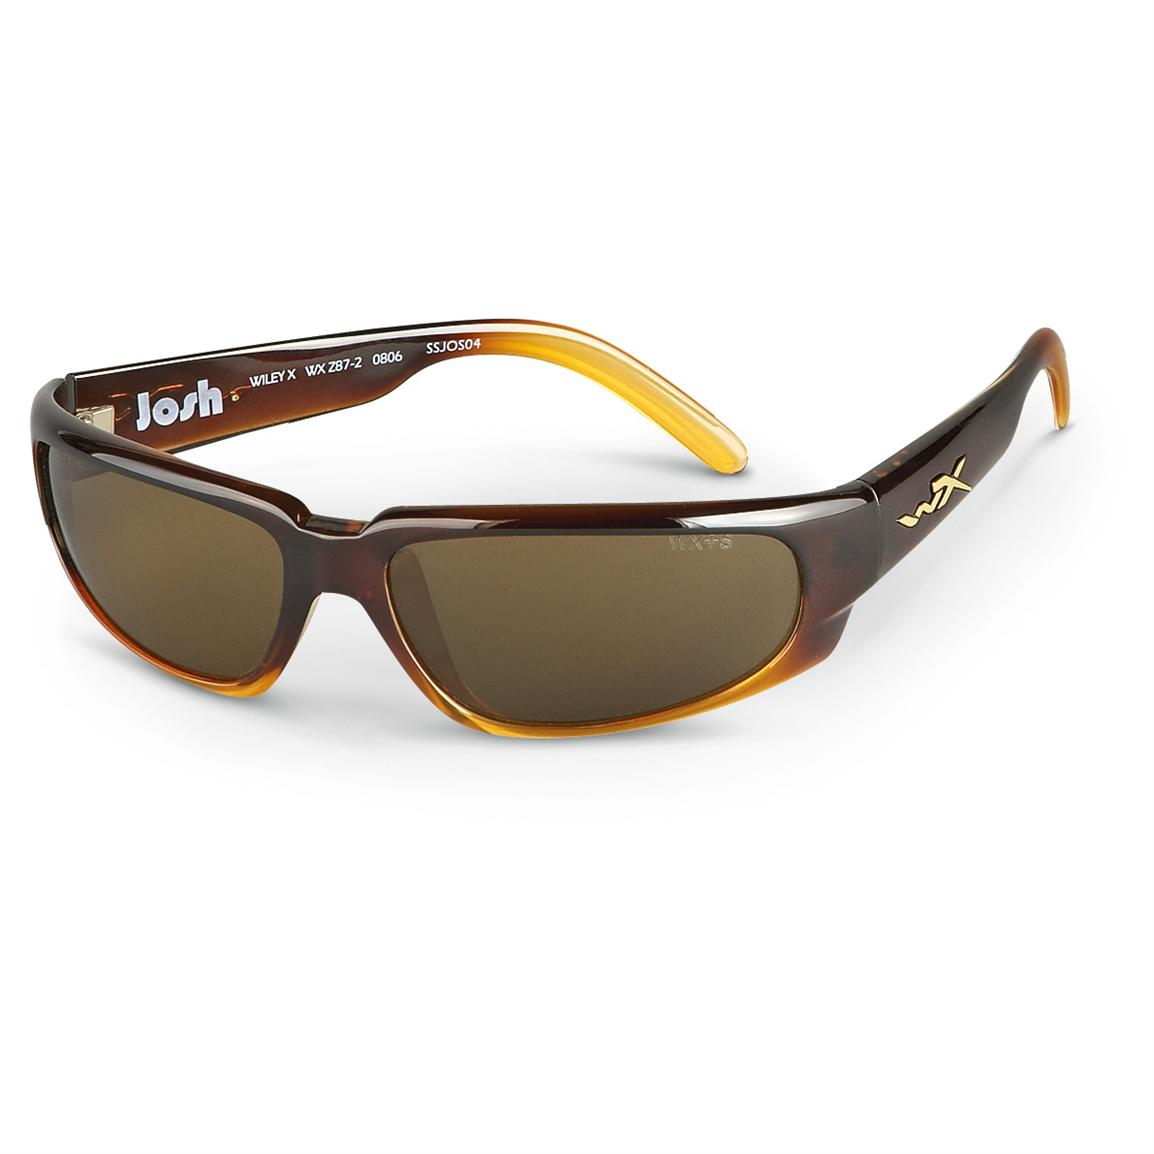 Wiley x polarized fishing sunglasses for Polarized fishing sunglasses